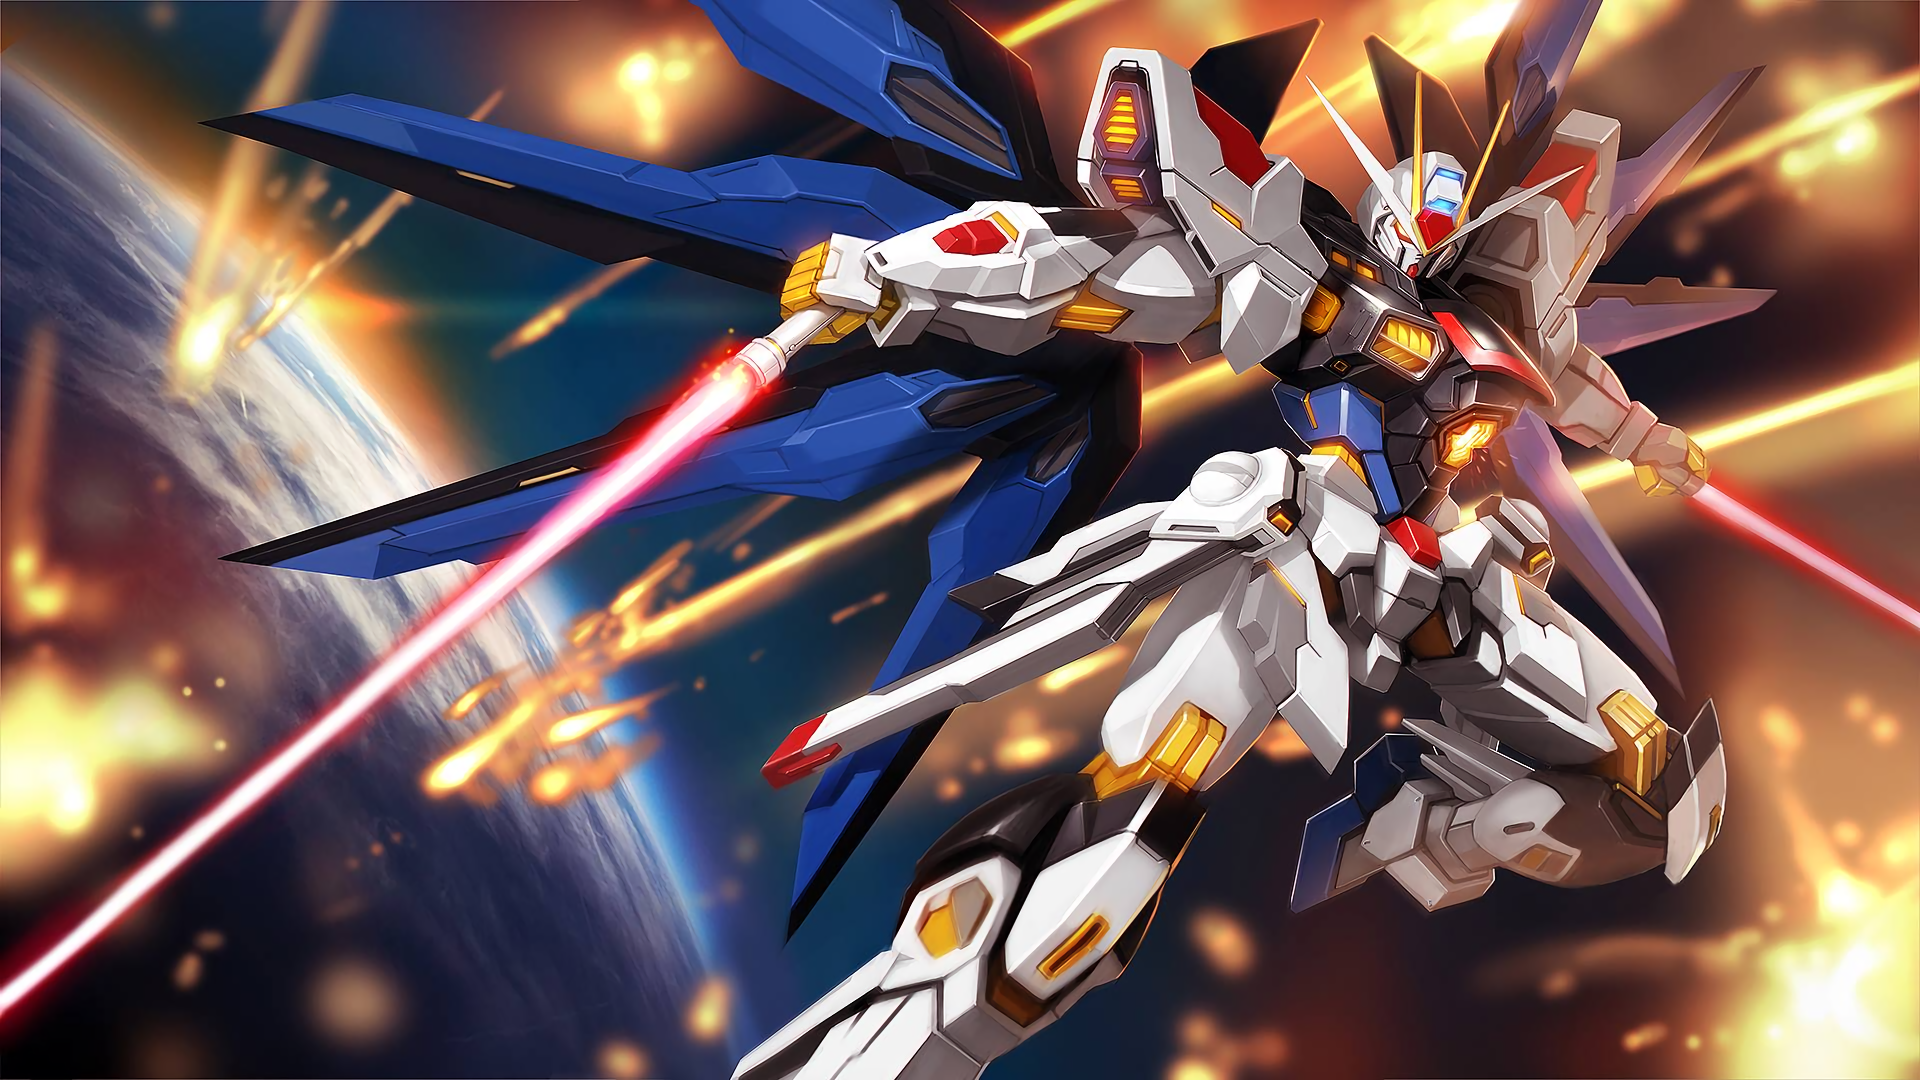 1920x1080 - Mobile Suit Gundam Seed Destiny Wallpapers 18